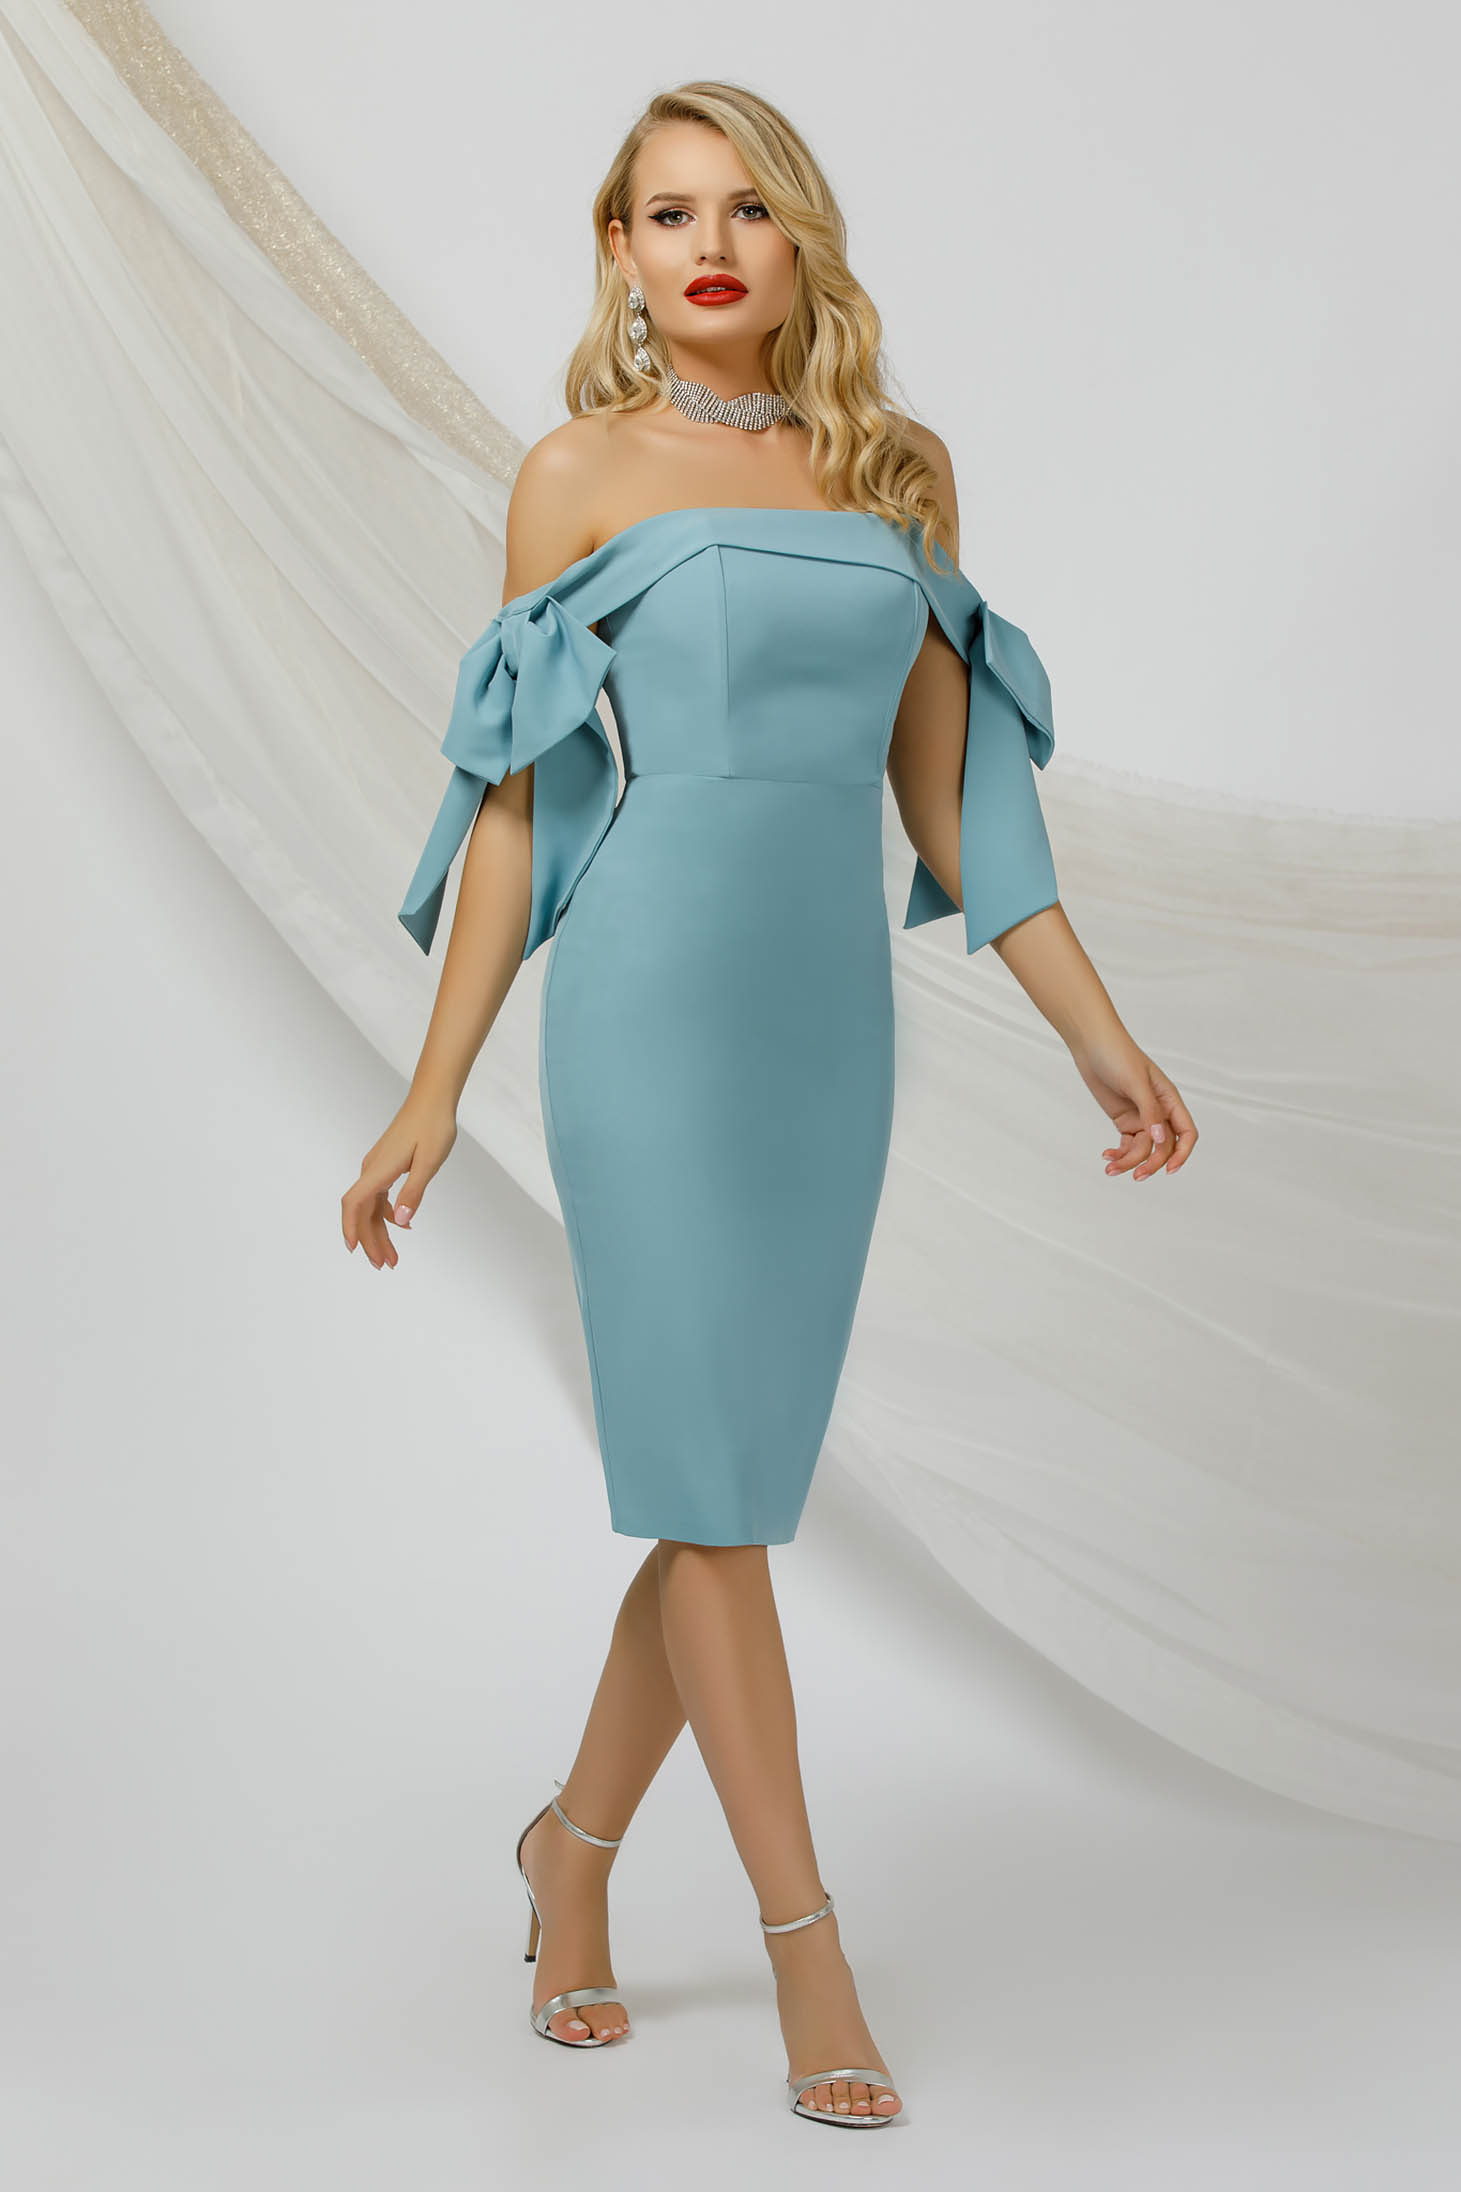 Mint dress pencil thin fabric occasional naked shoulders with bow accessories